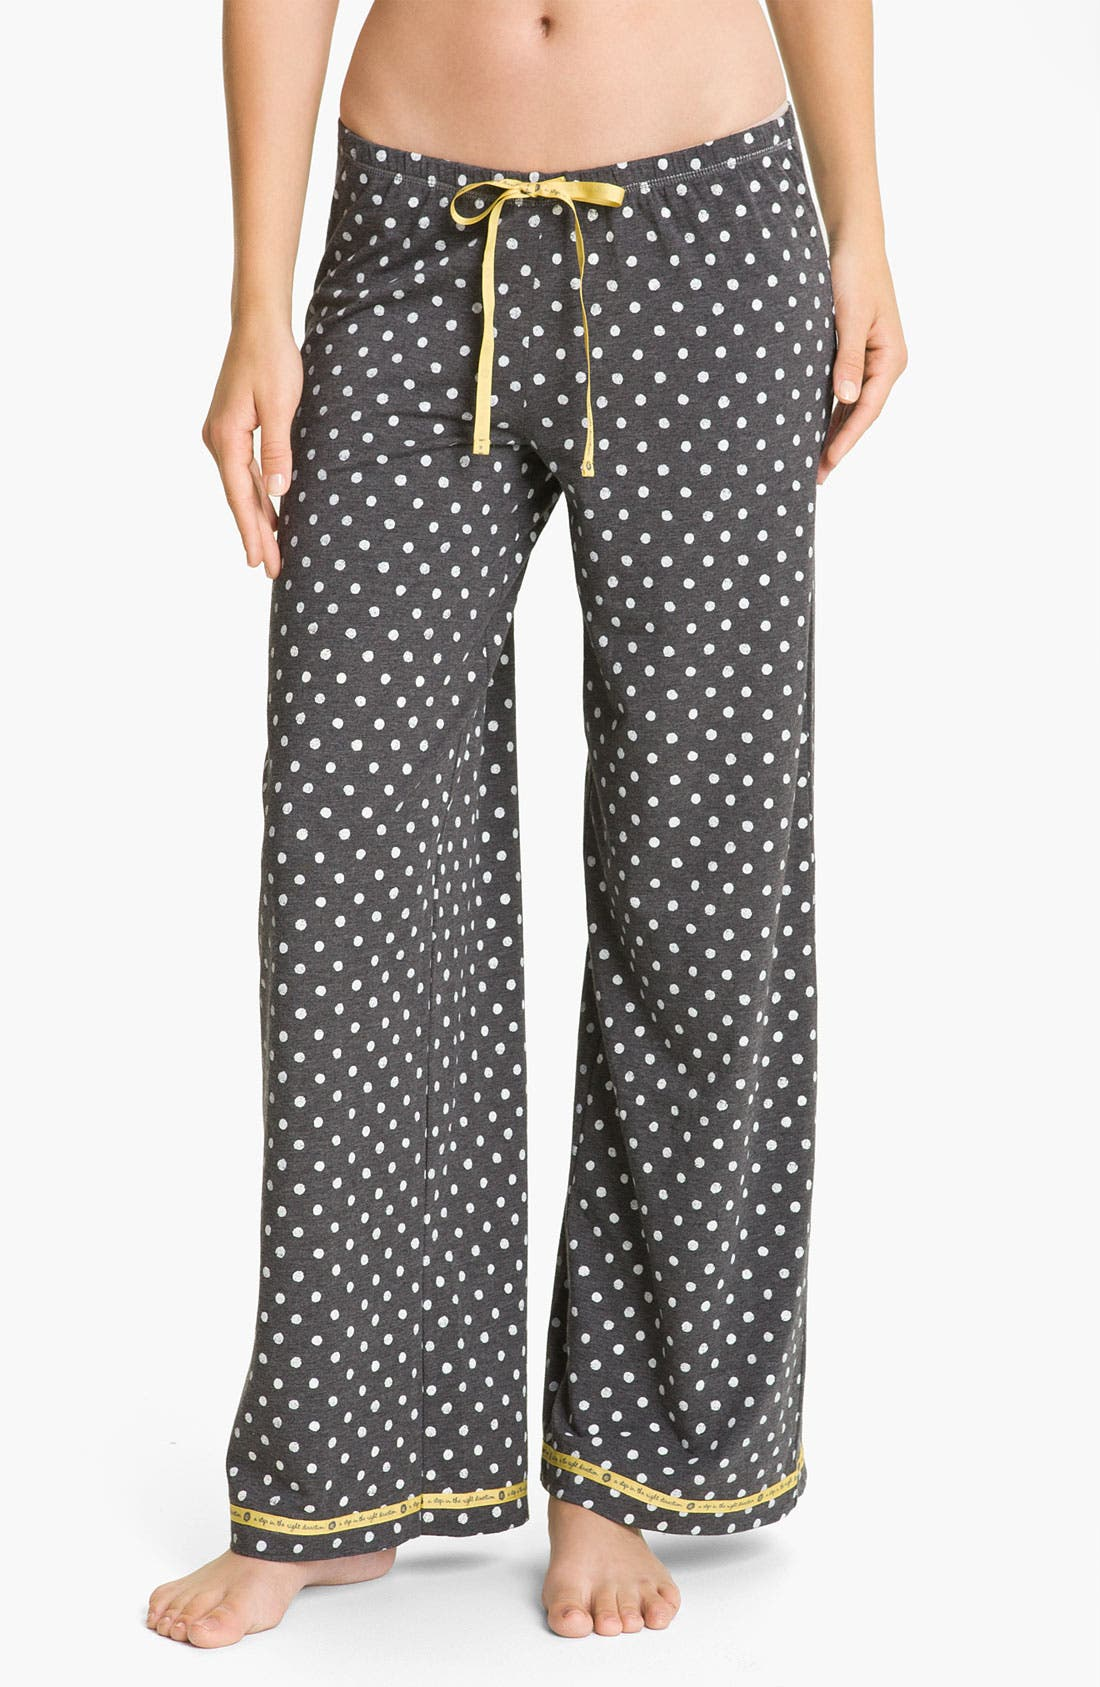 Alternate Image 1 Selected - Hue 'Watercolor Dot' Pajama Pants